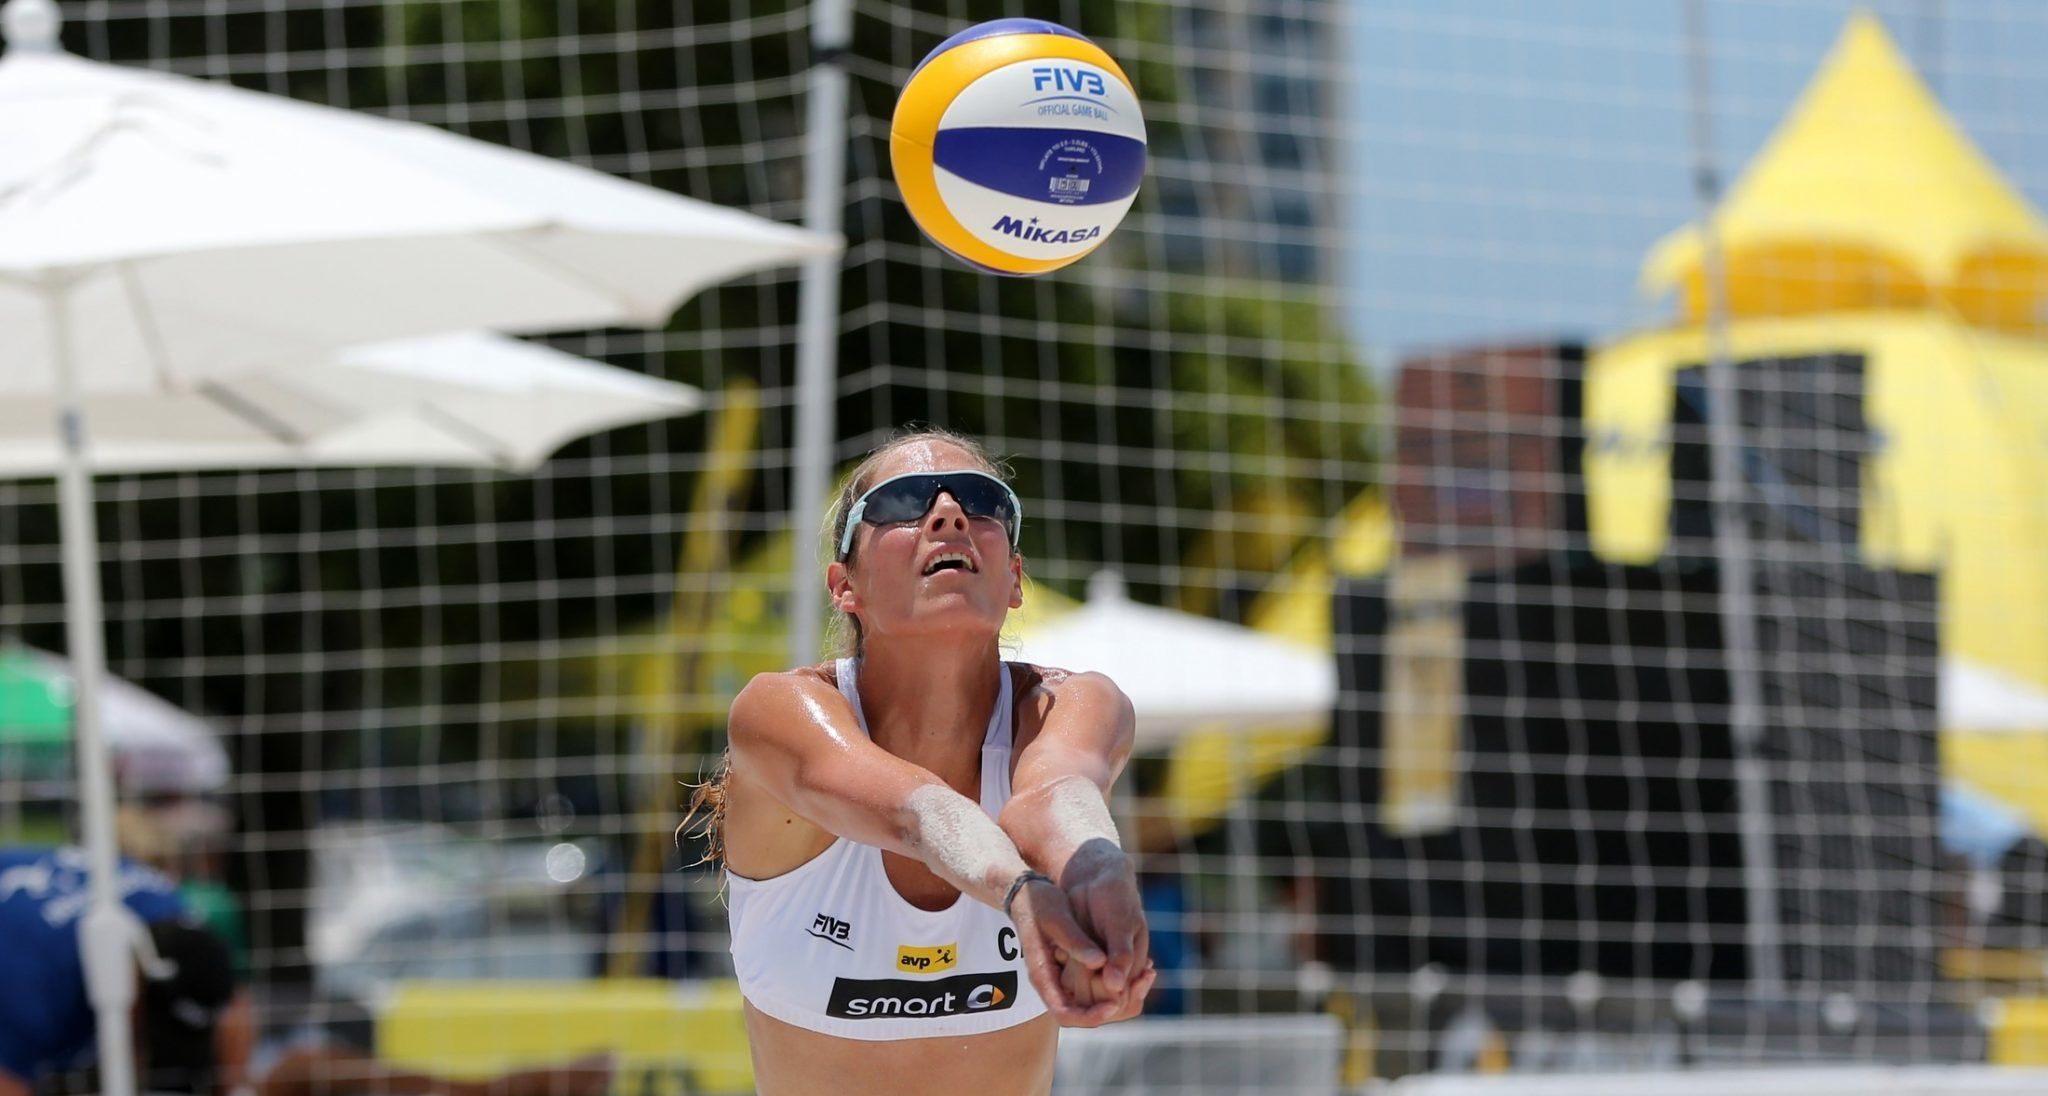 Professional Volleyball player Sarah Pavan in action